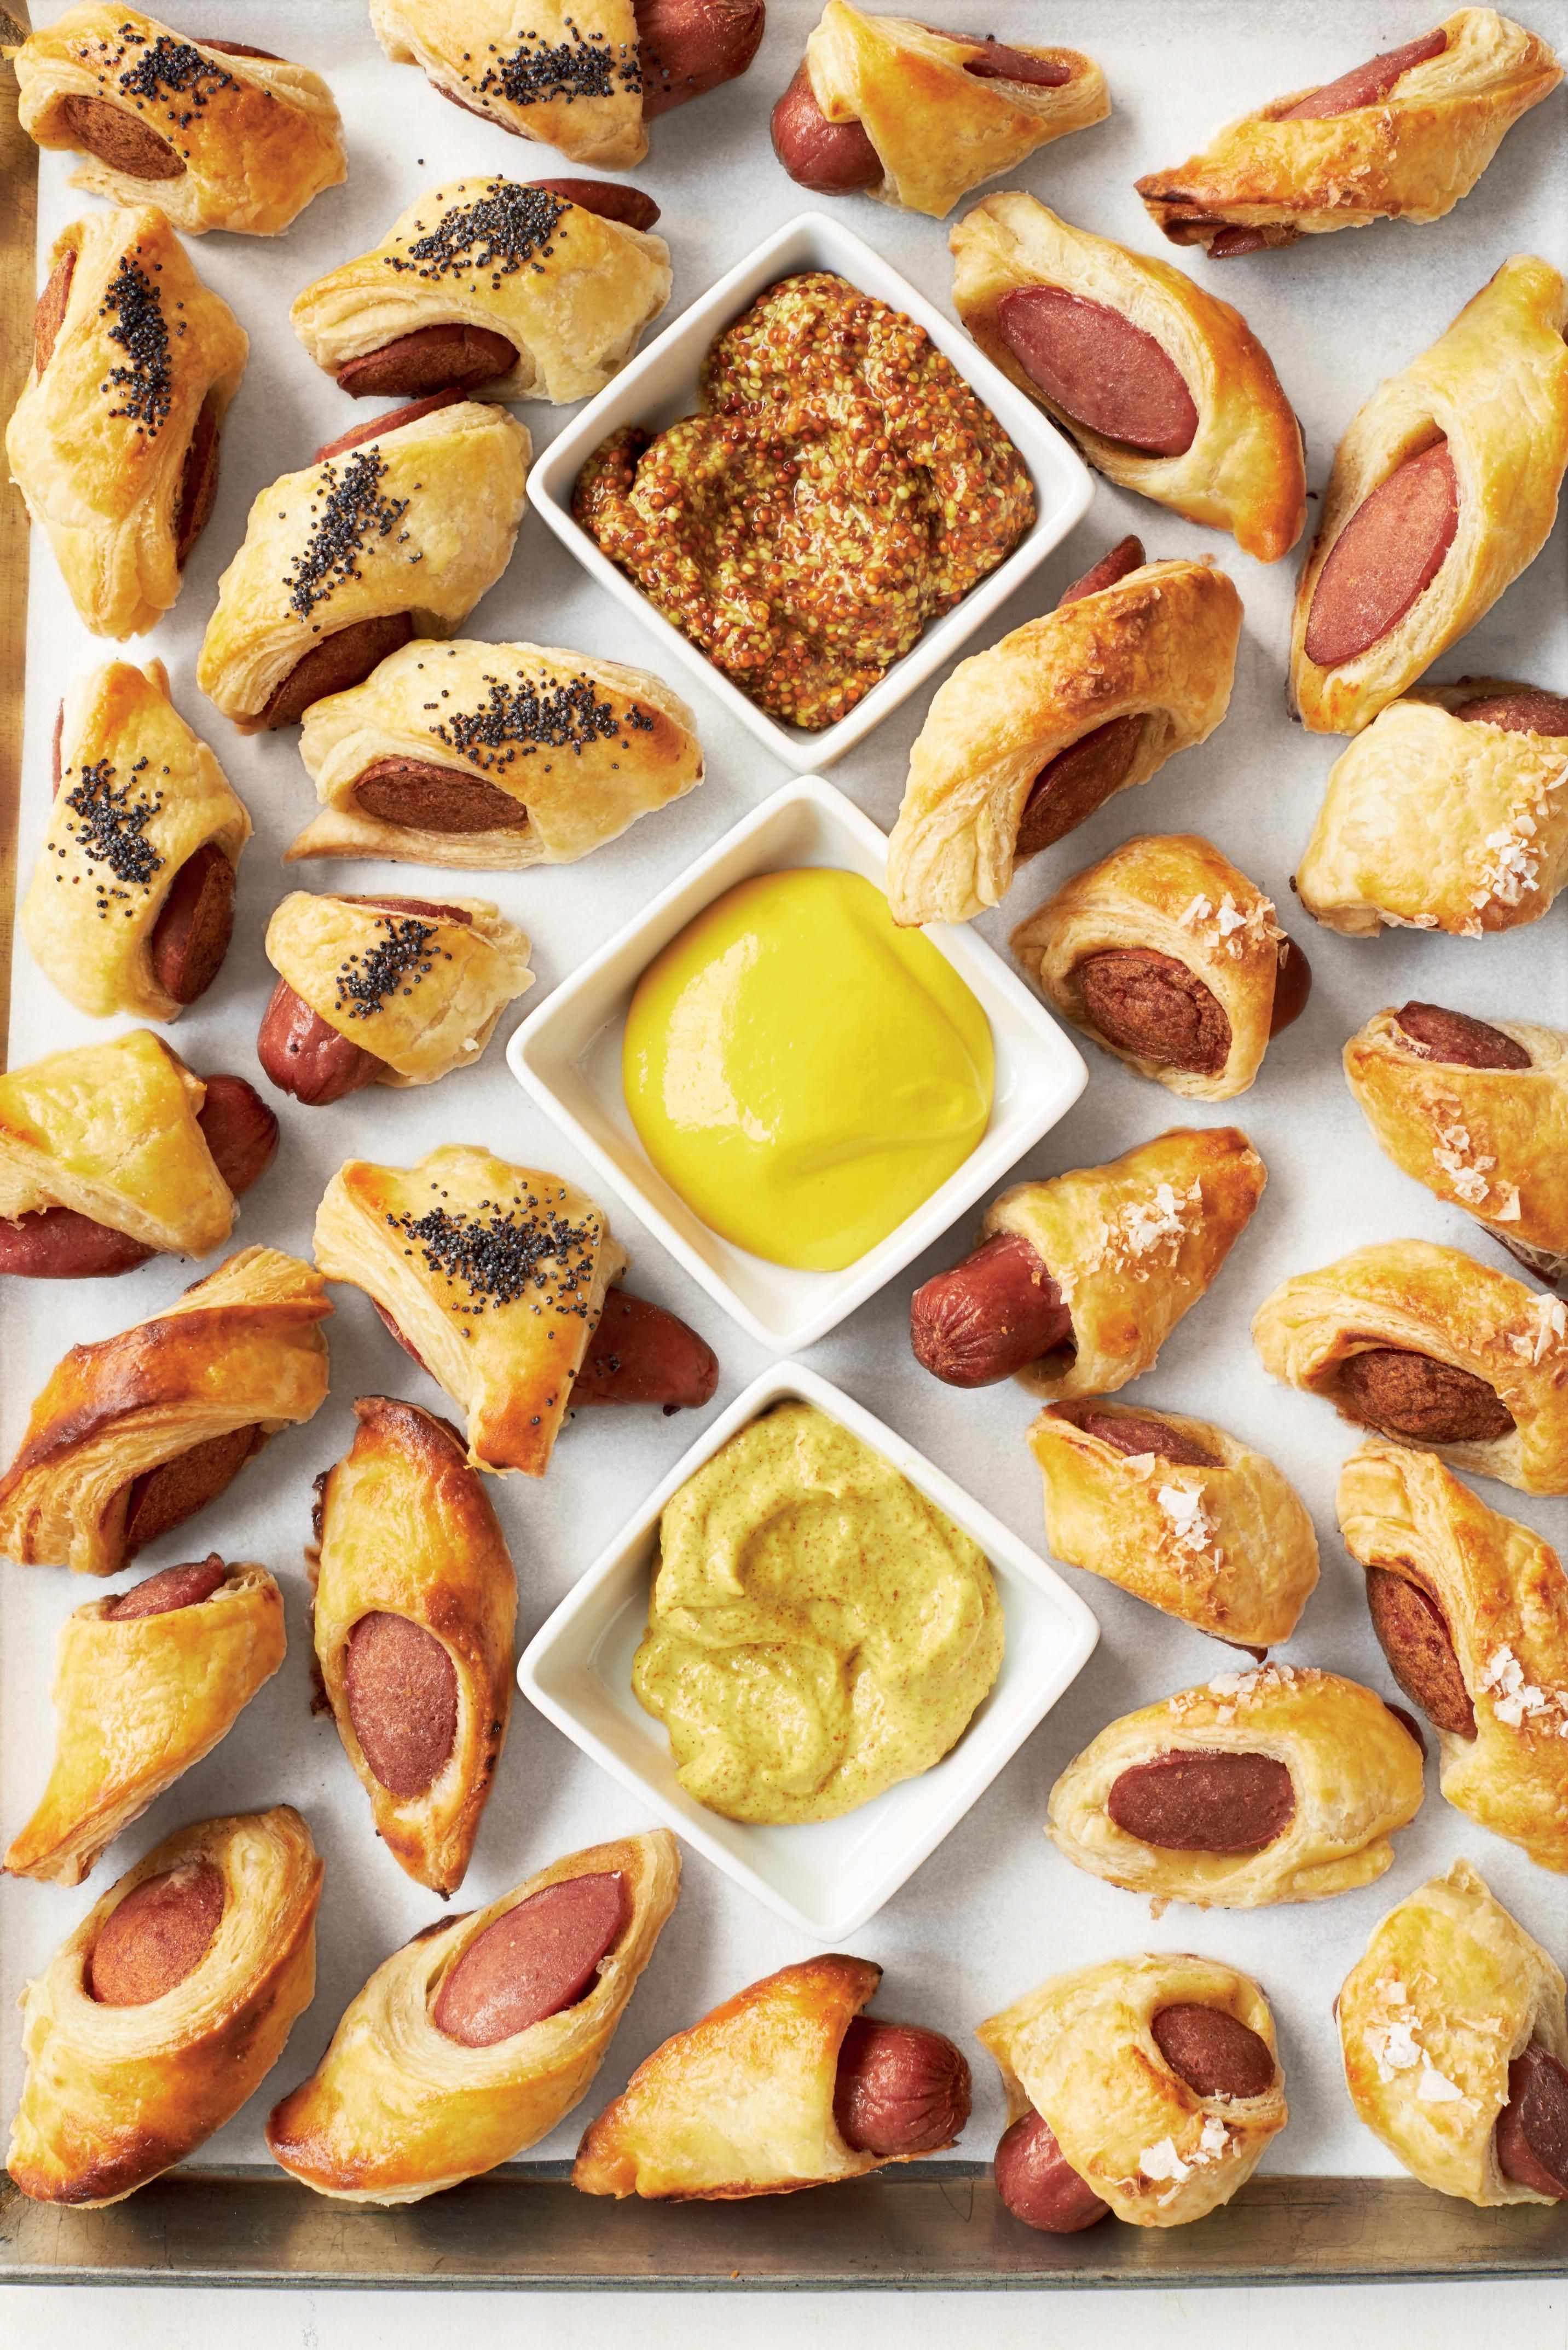 Photo of Football Food: Martha Stewart promises her Pigs in Blankets are unfussy crowd-pleasers